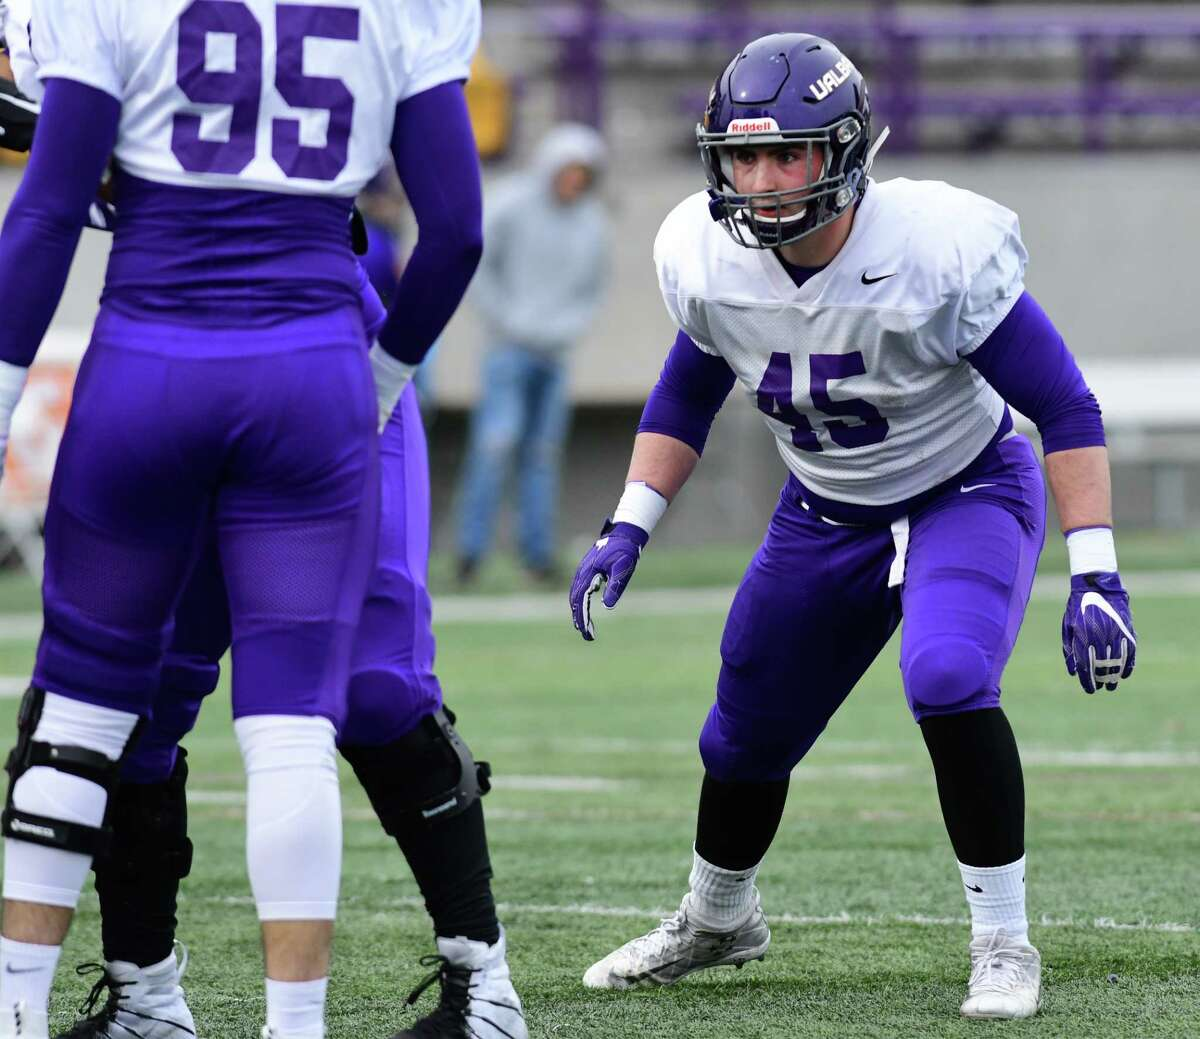 University at Albany linebacker Levi Metheny, right, is seen during spring football practice at Casey Stadium on Tuesday, April 2, 2019 in Albany, N.Y. (Lori Van Buren/Times Union)